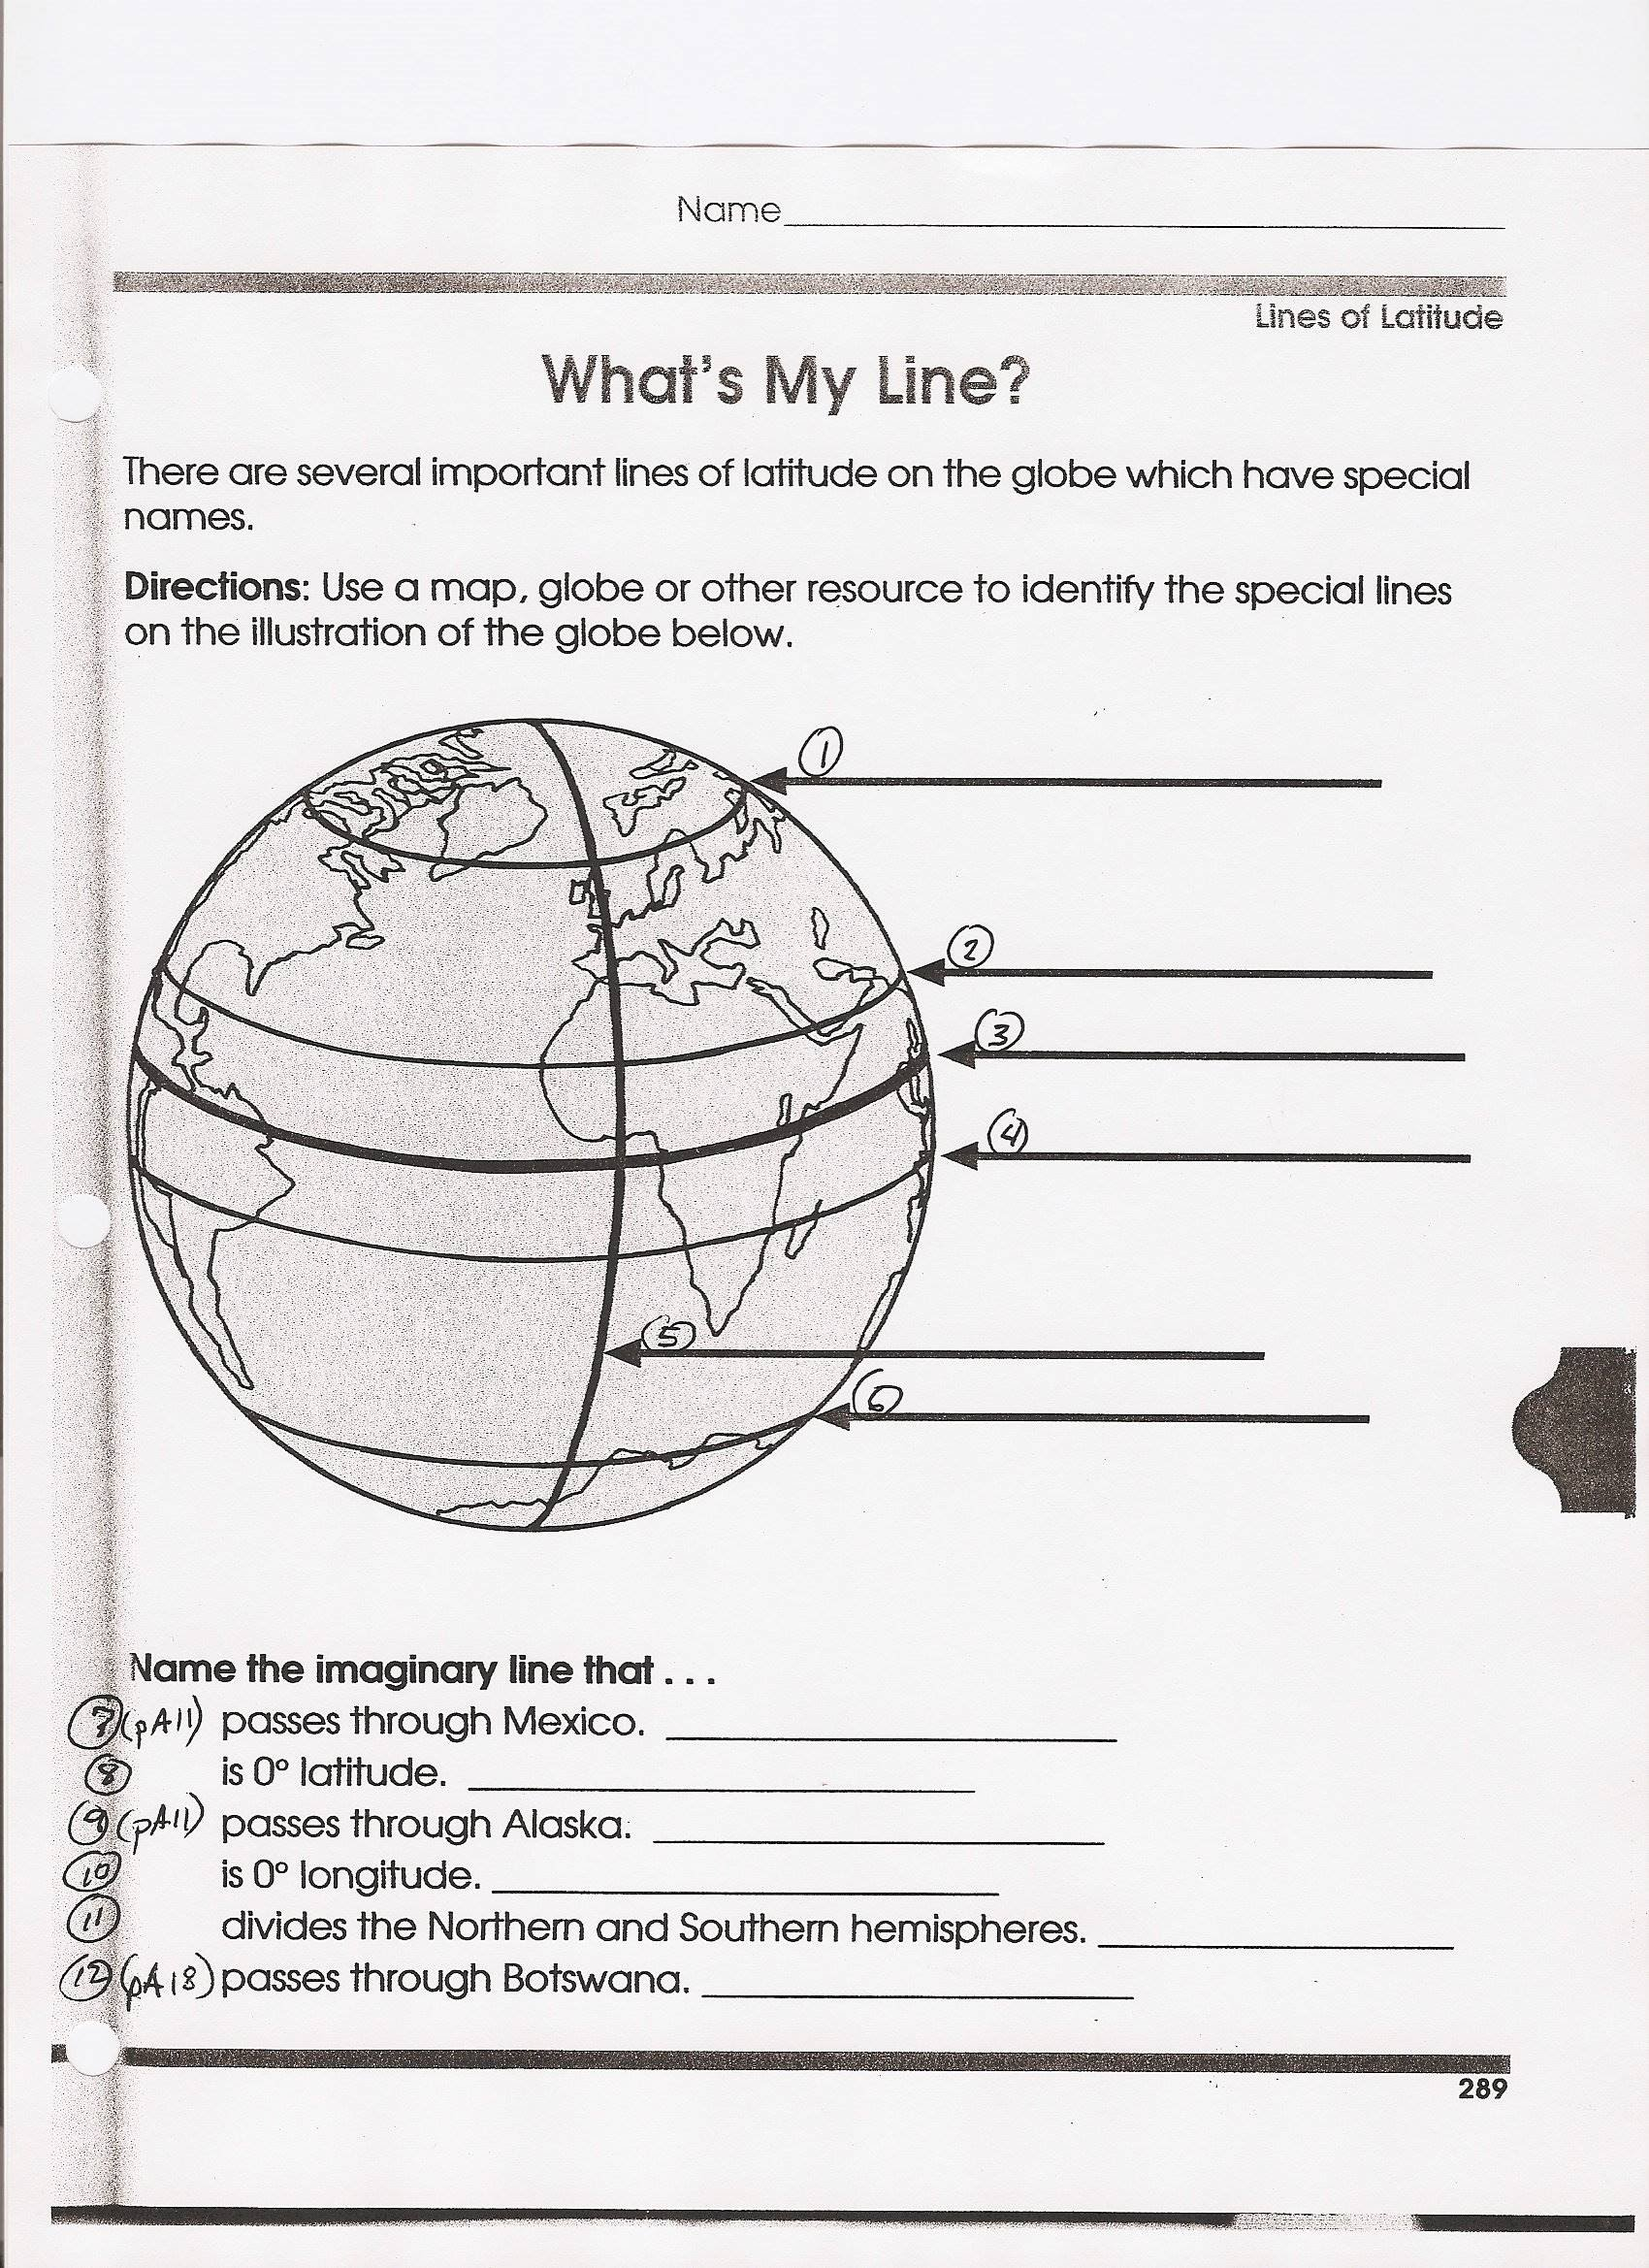 Worksheets Hemisphere Worksheets mrfordsclass materials